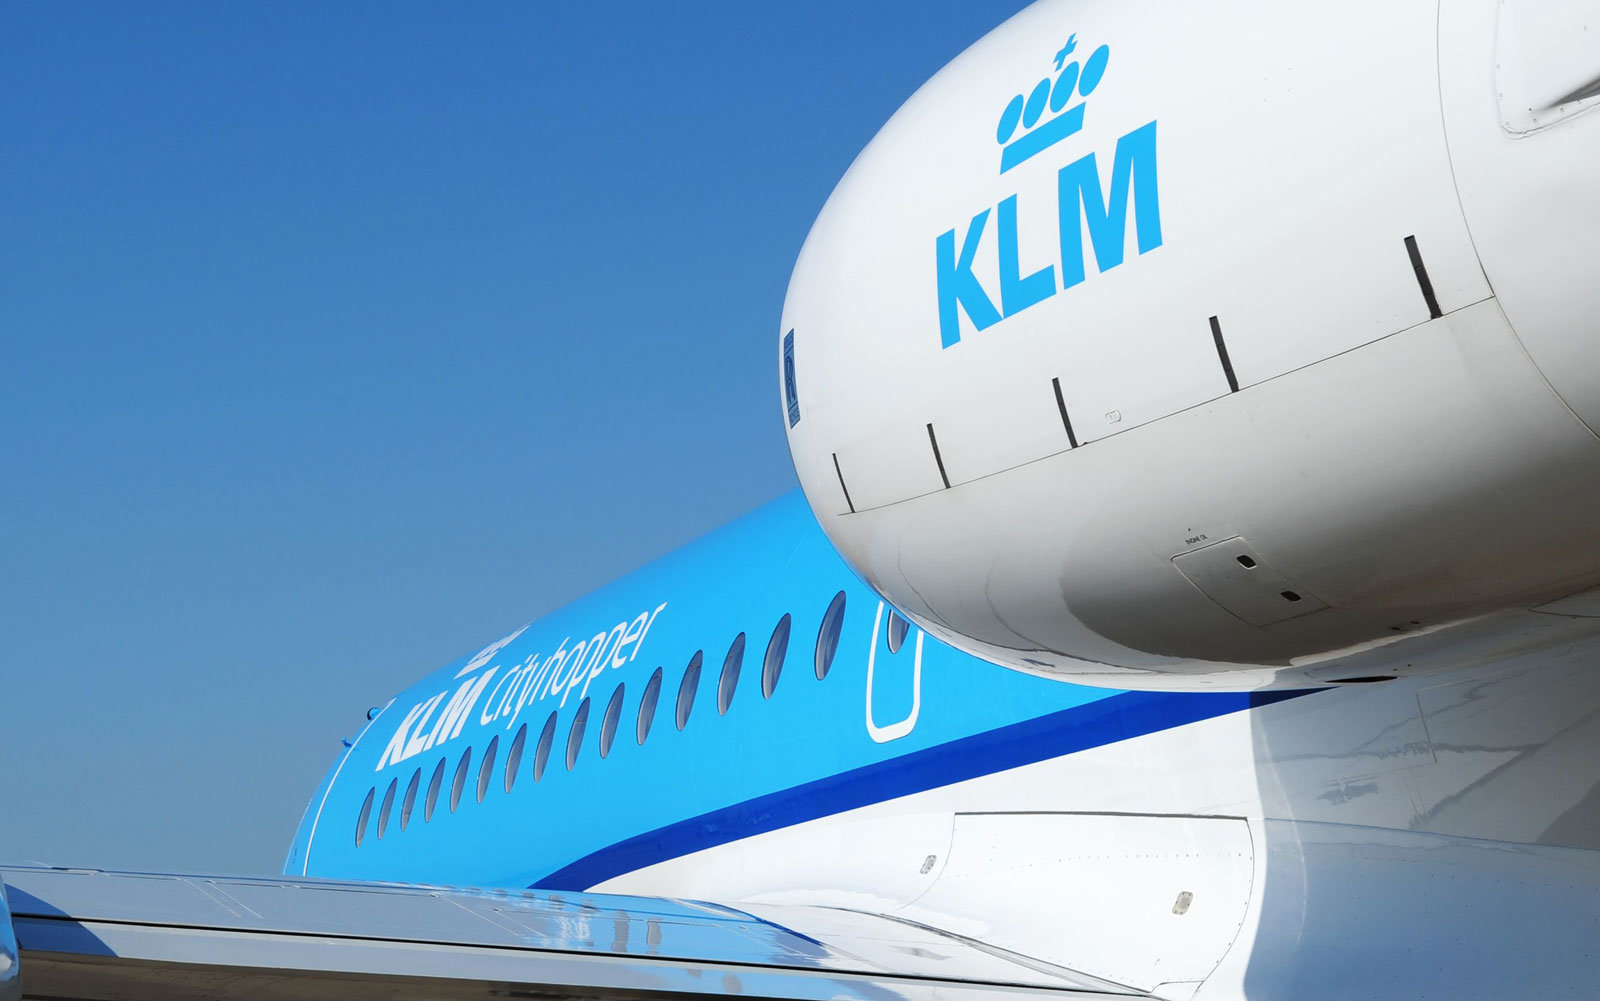 KLM wants you to know it's an airline.